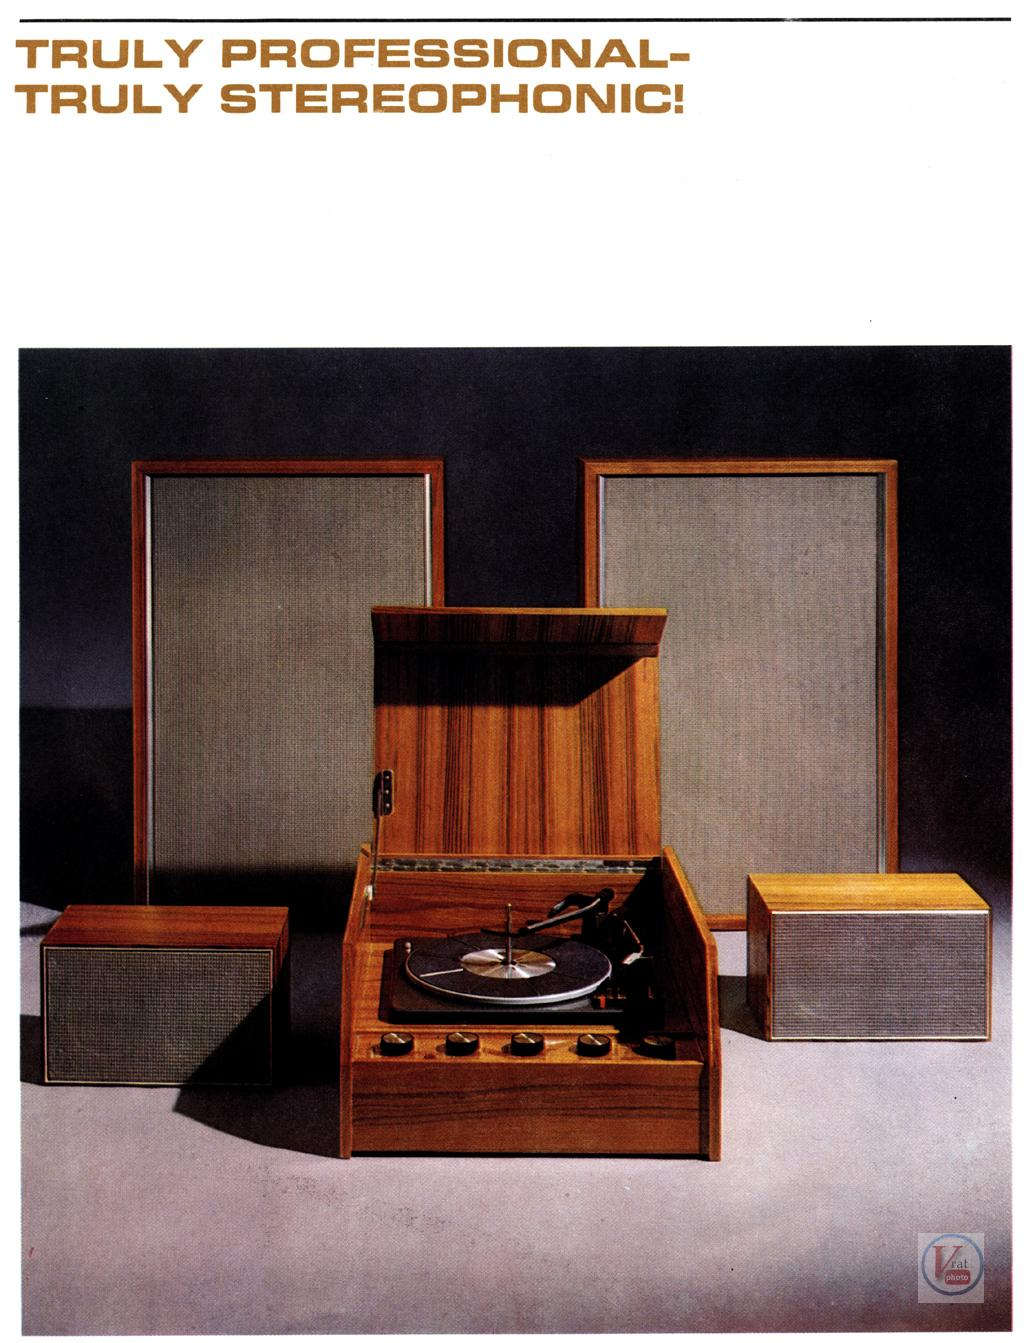 Parmeko Record Player 14